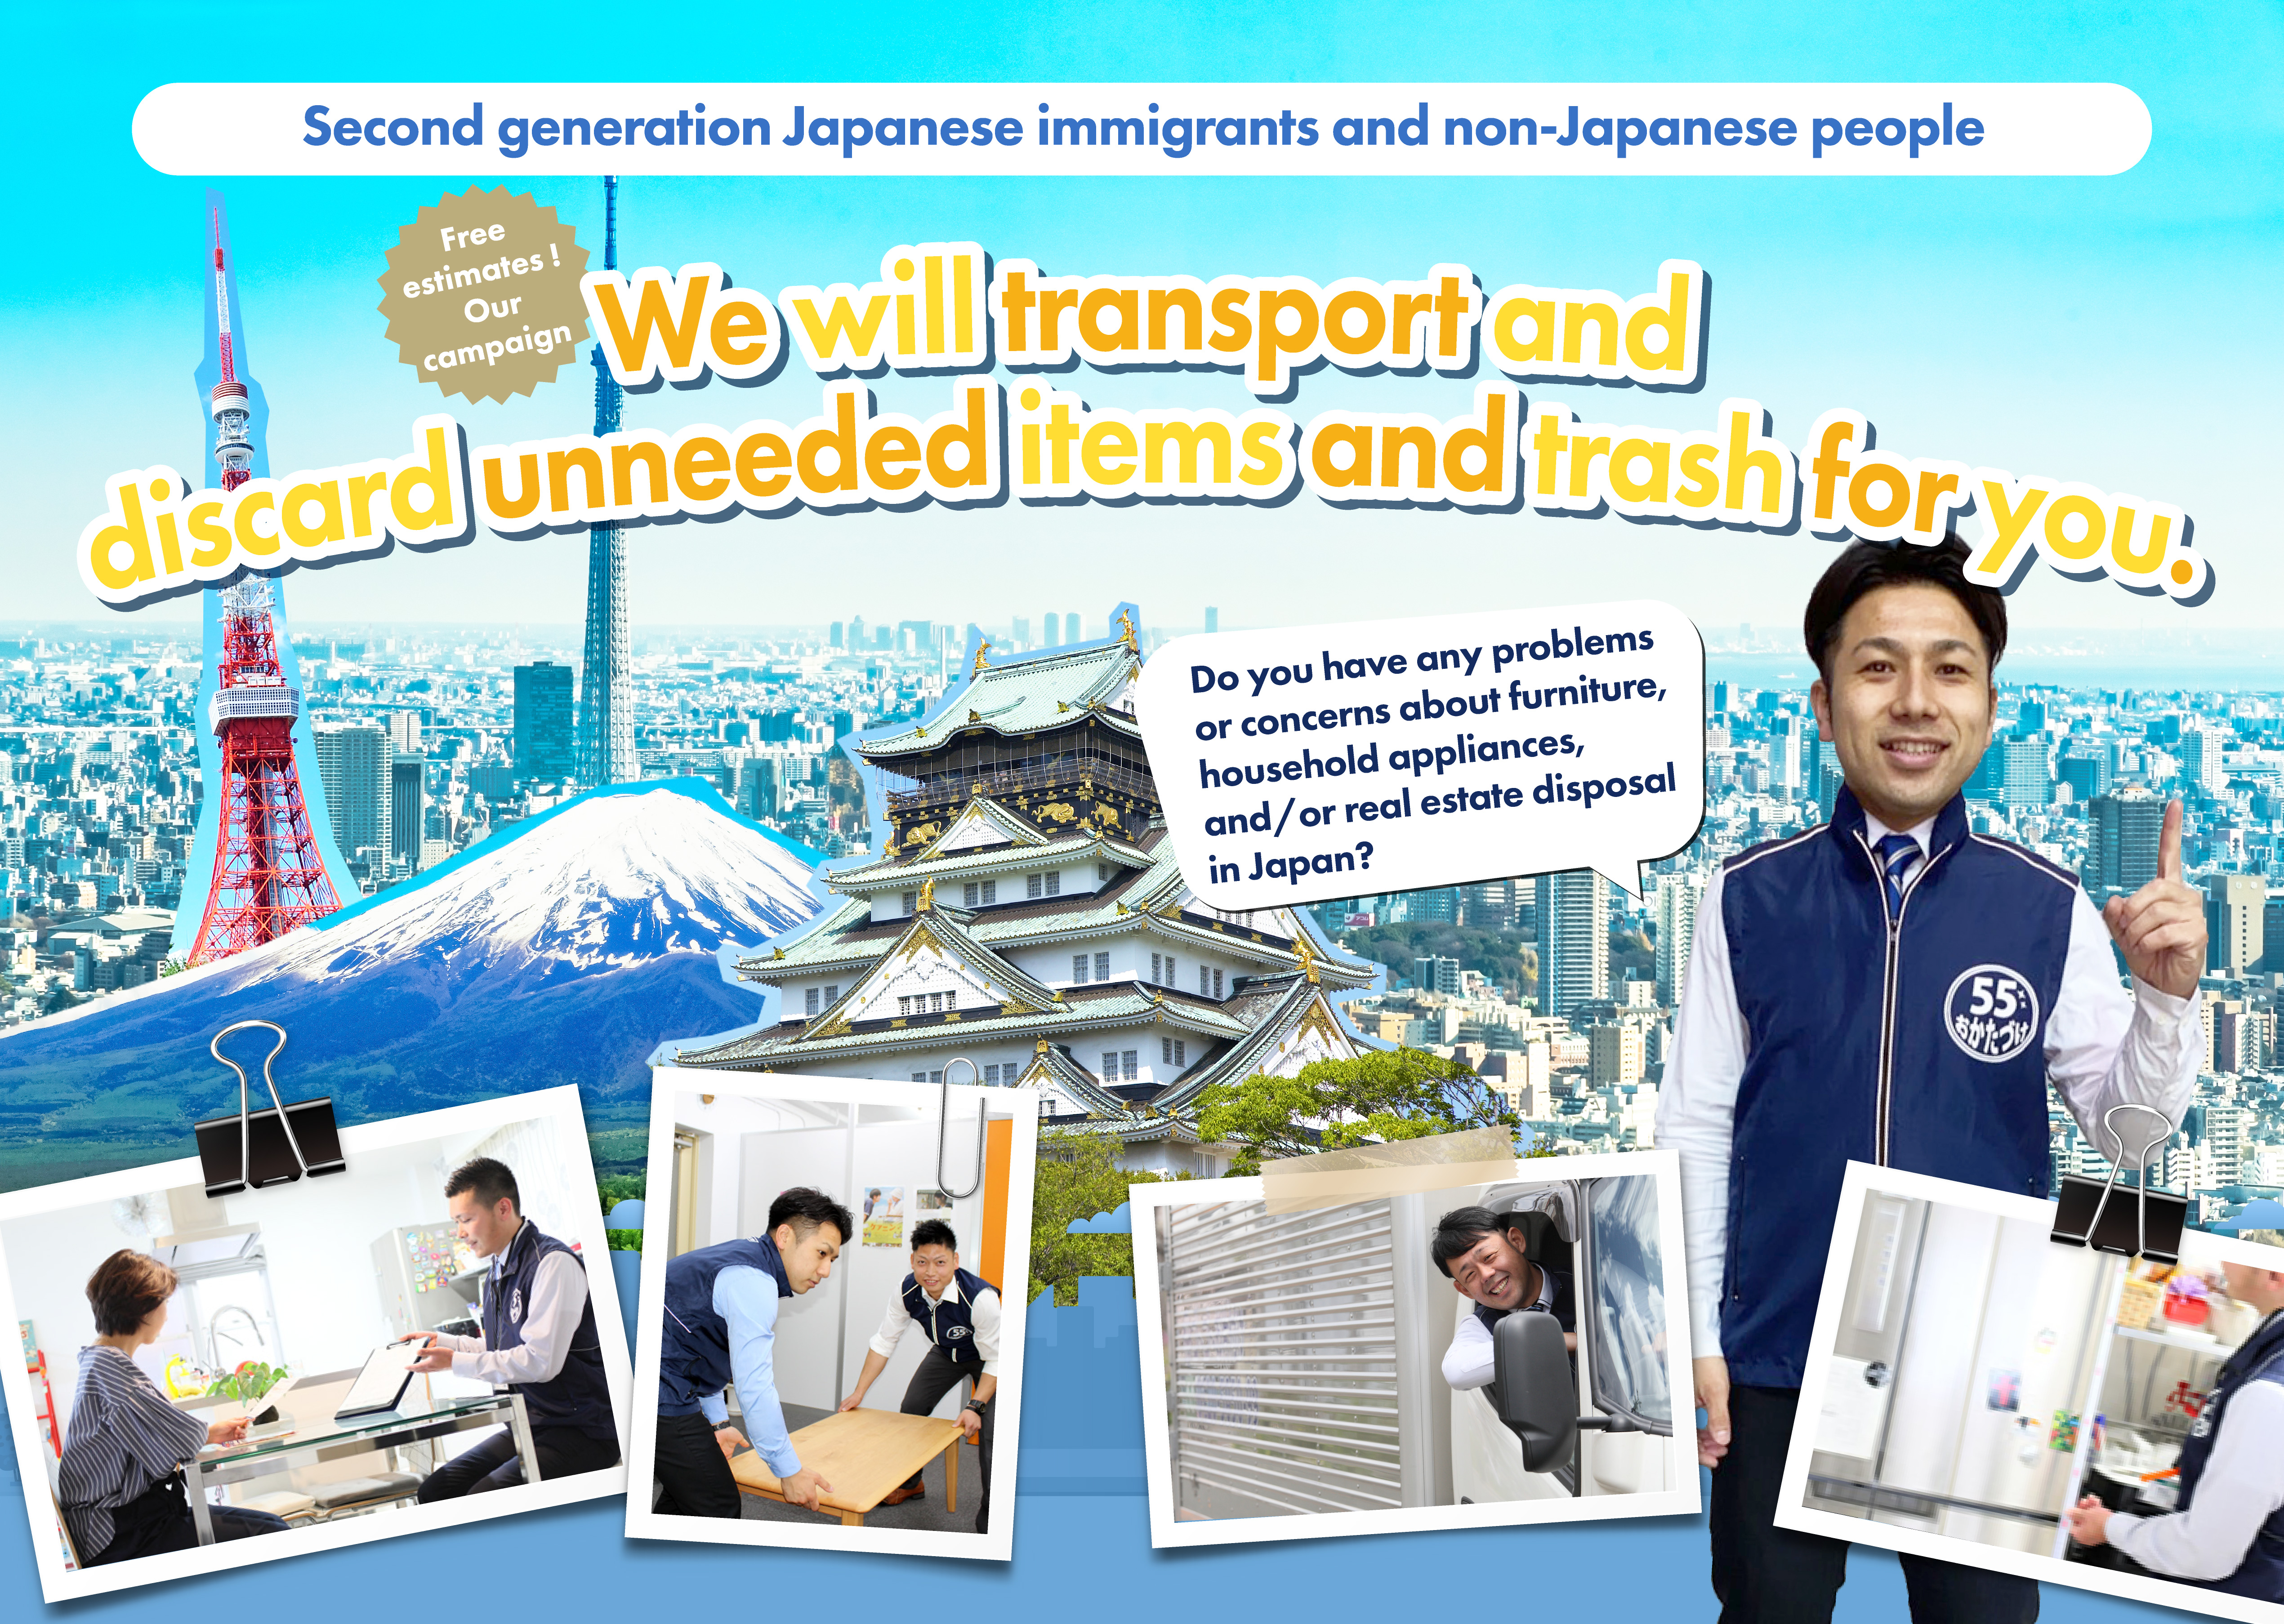 Second generation Japanese immigrants and non-Japanese people: Fee estimates! Our campaign / We will transport and discard unneeded items and trash for you. Do you have any problems or concerns about furniture, household appliances, and / or real estate disposal in Japan?